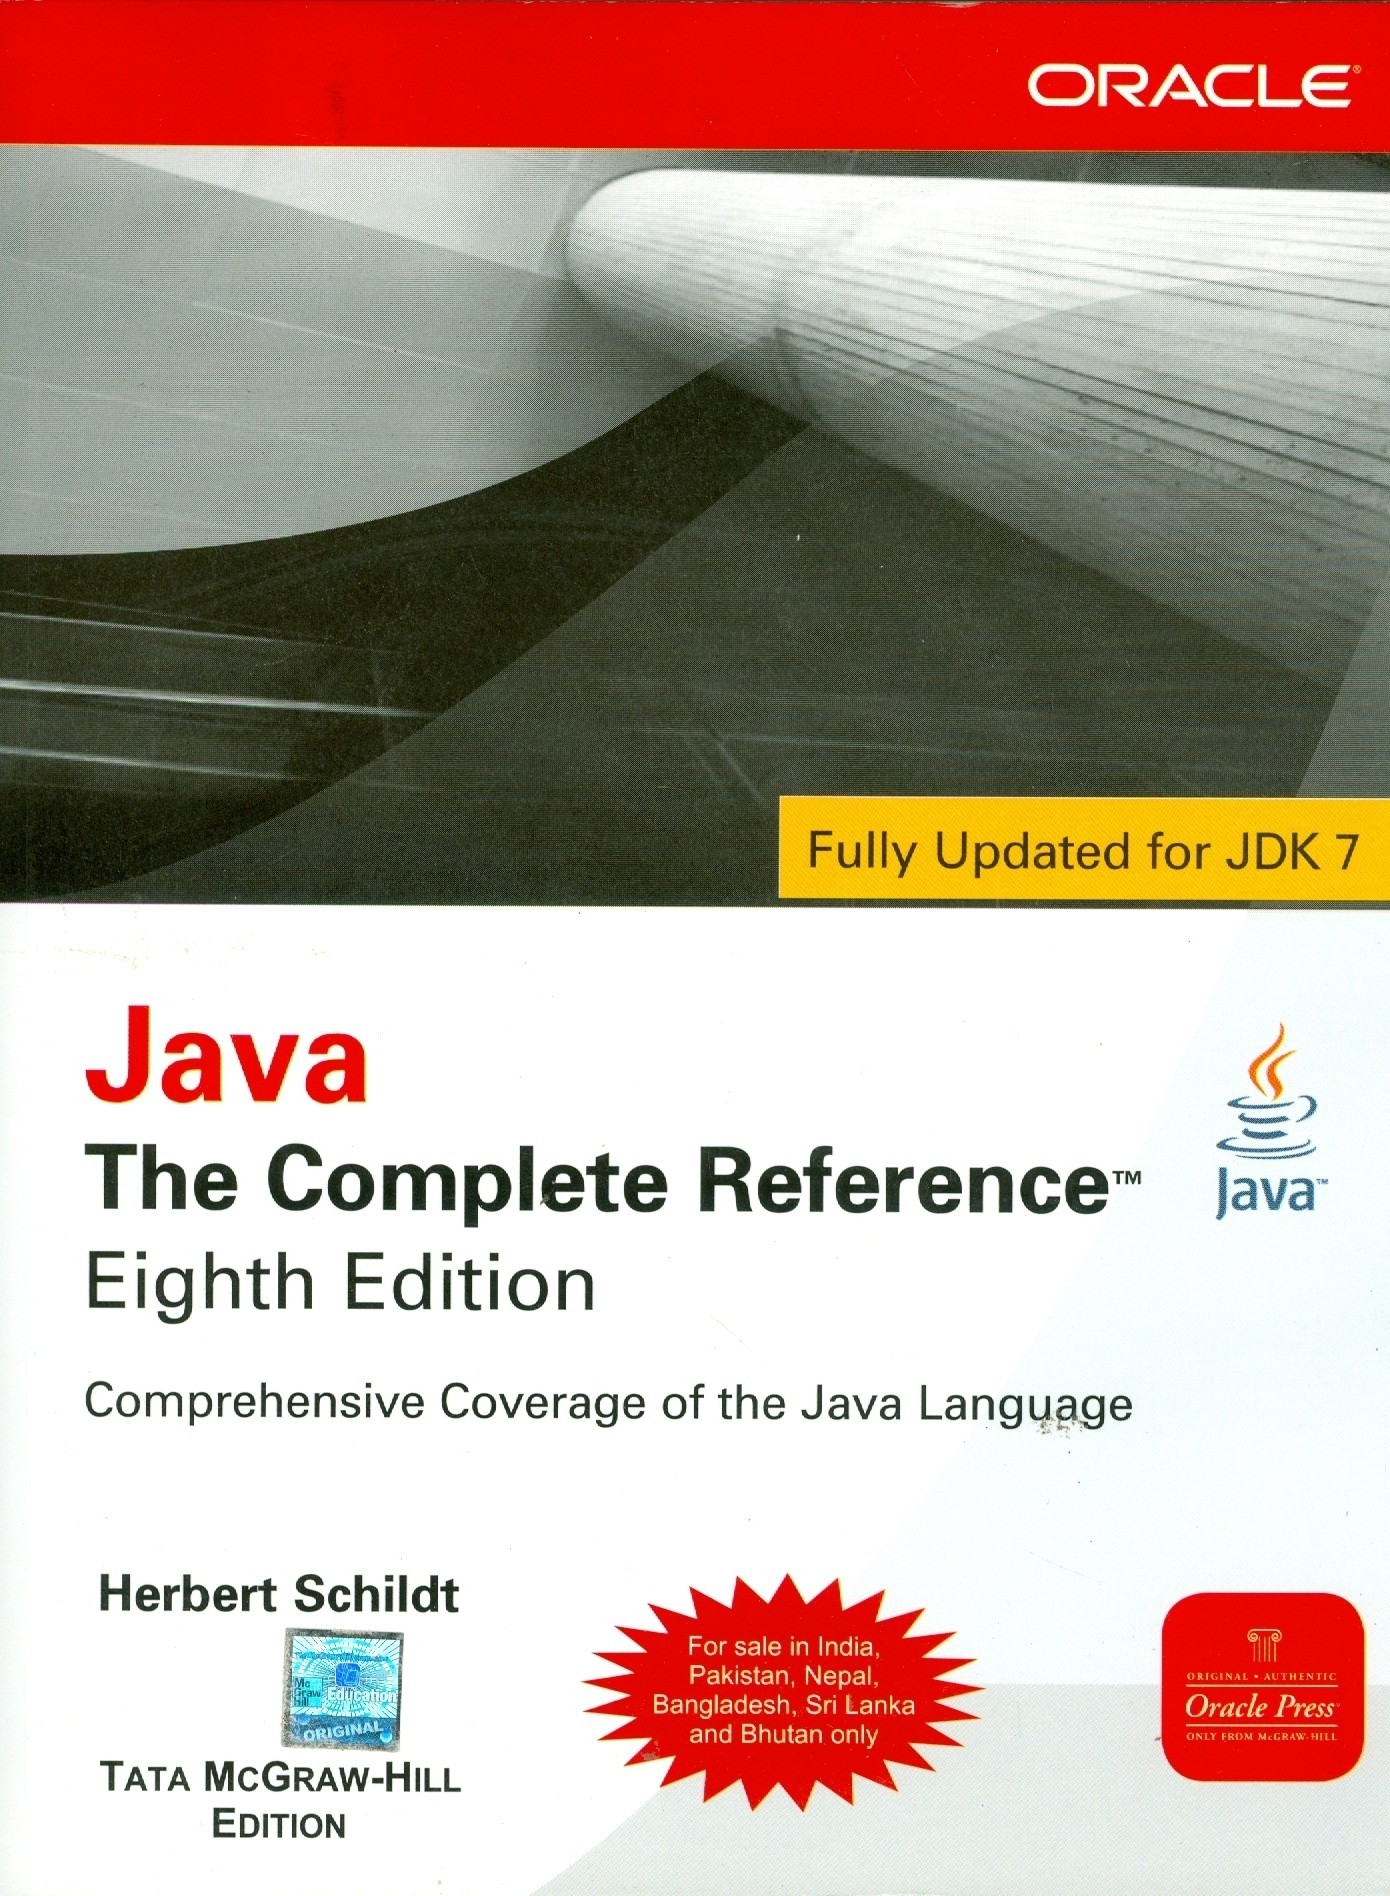 java the complete reference j2se 5 edition